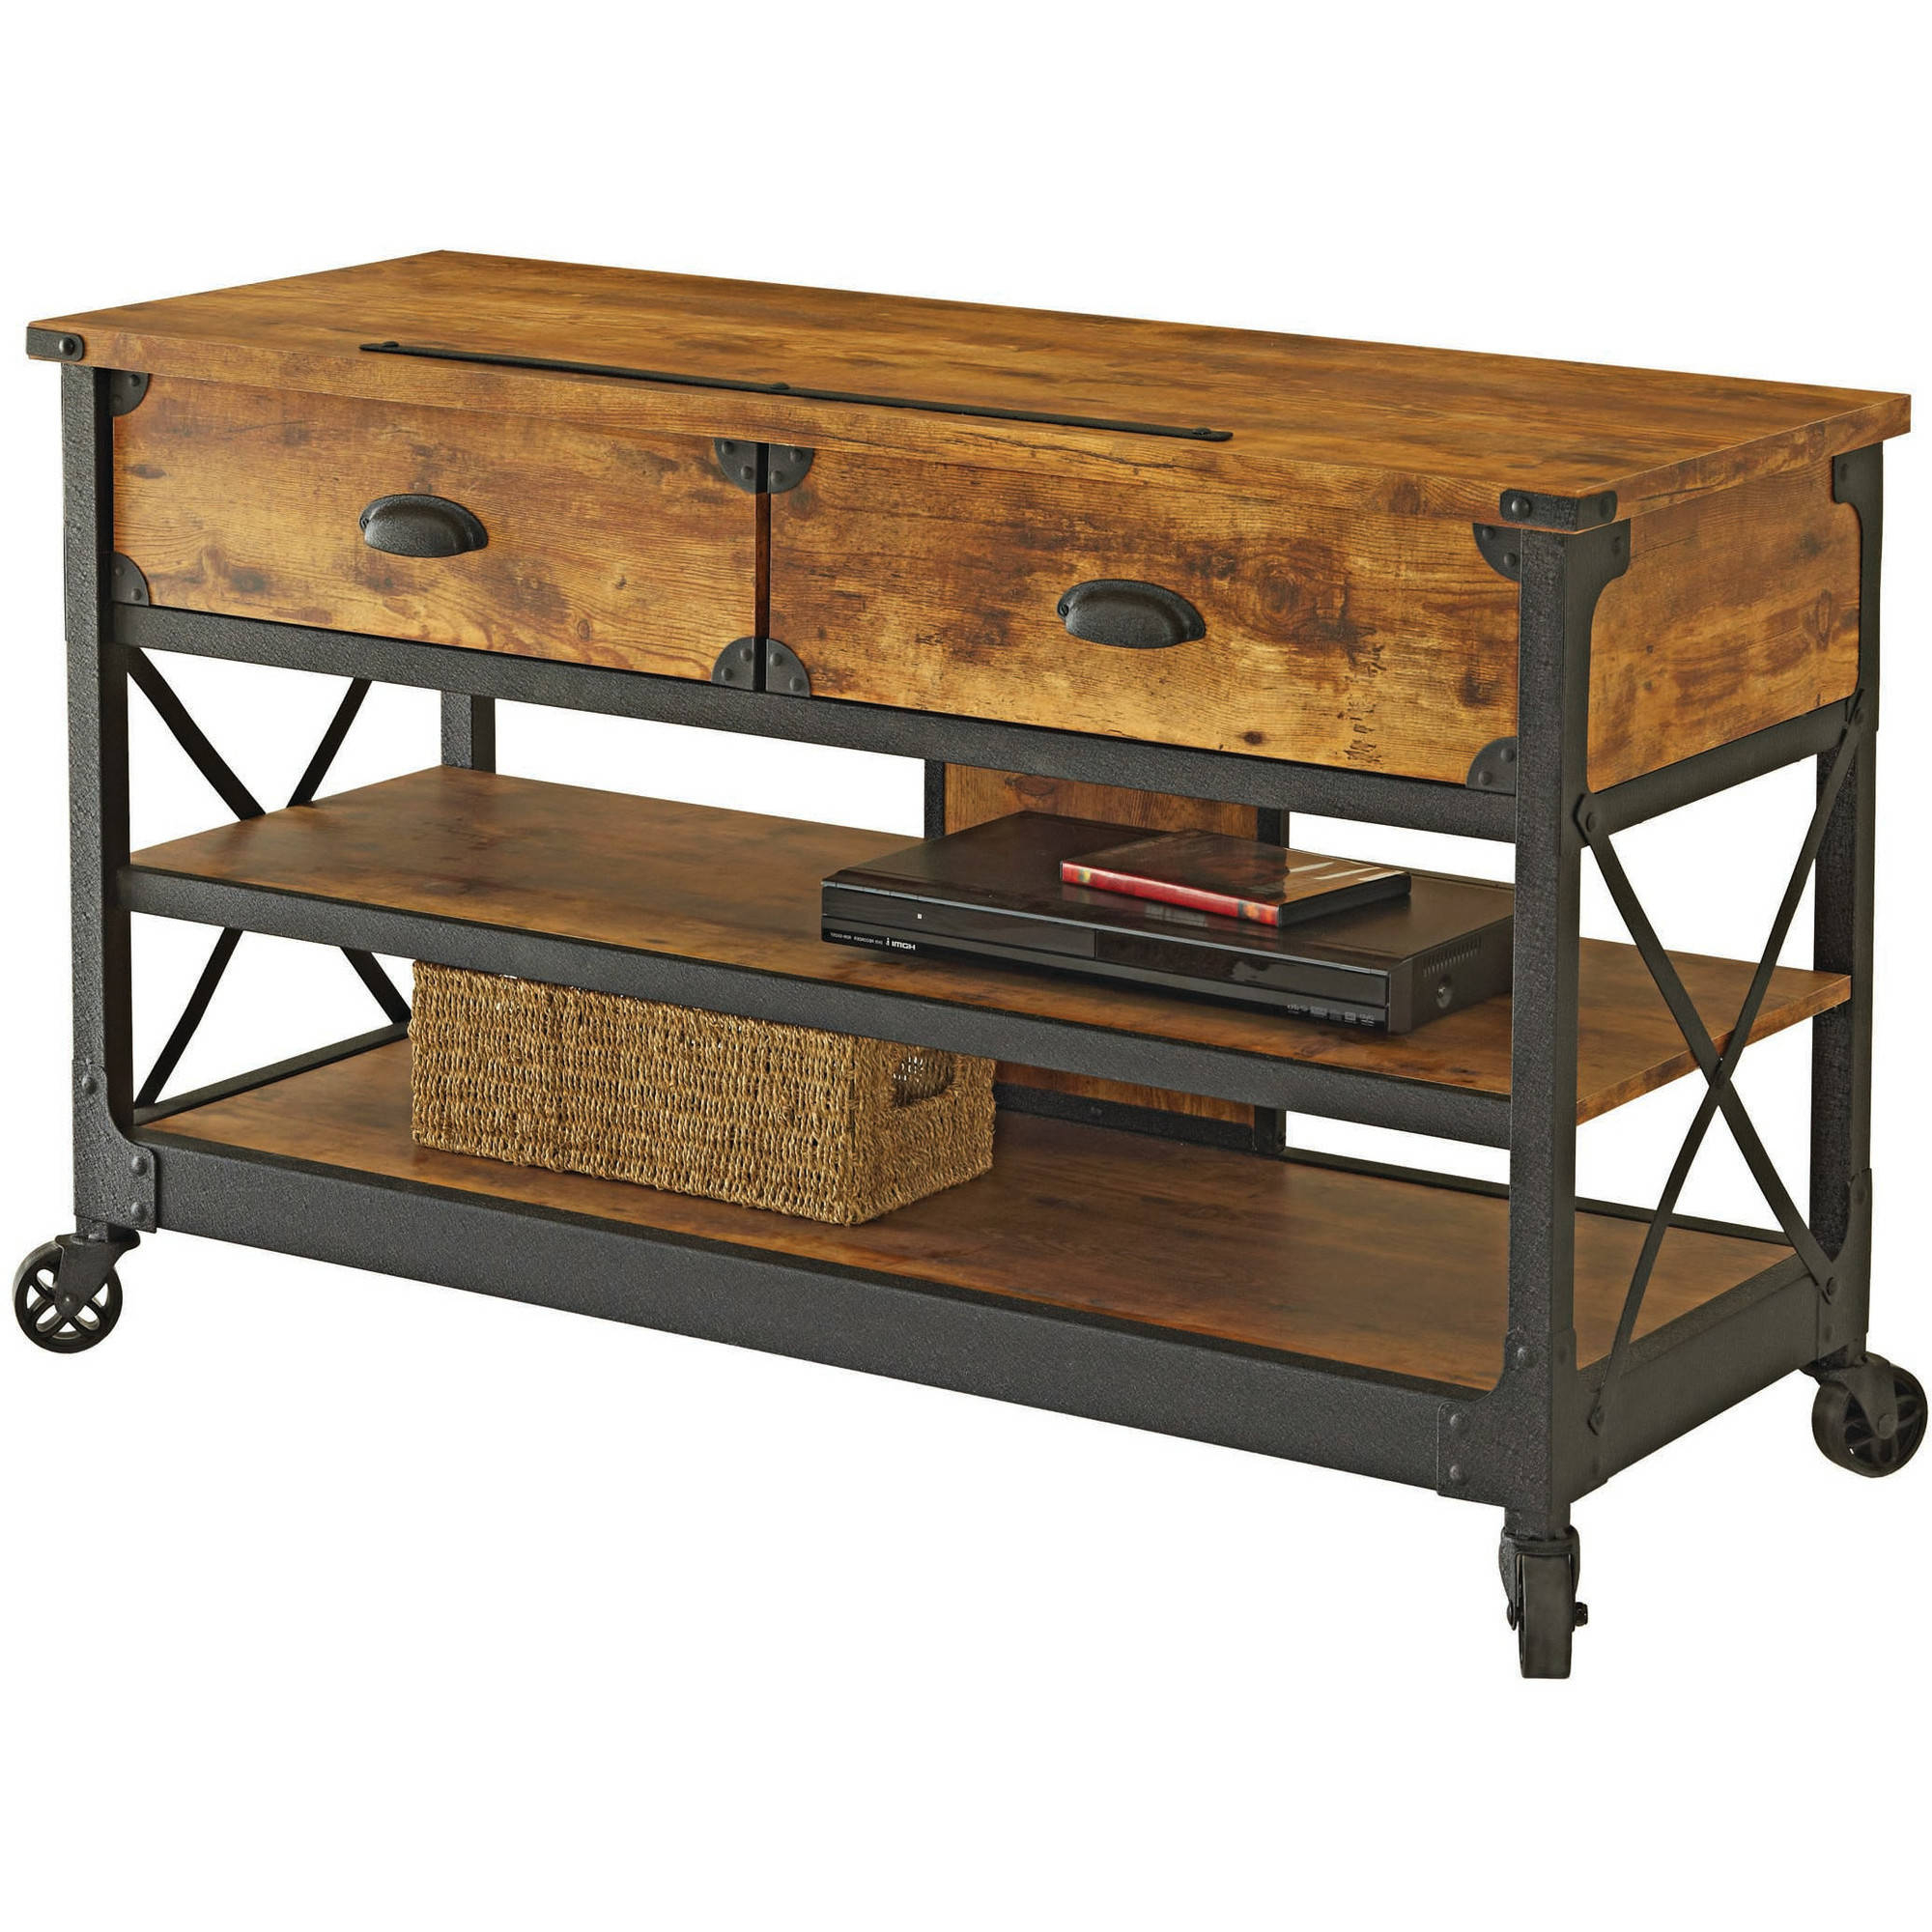 2018 Country Tv Stands For Better Homes & Gardens Rustic Country Tv Stand For Tvs Up To 52 (Gallery 1 of 20)